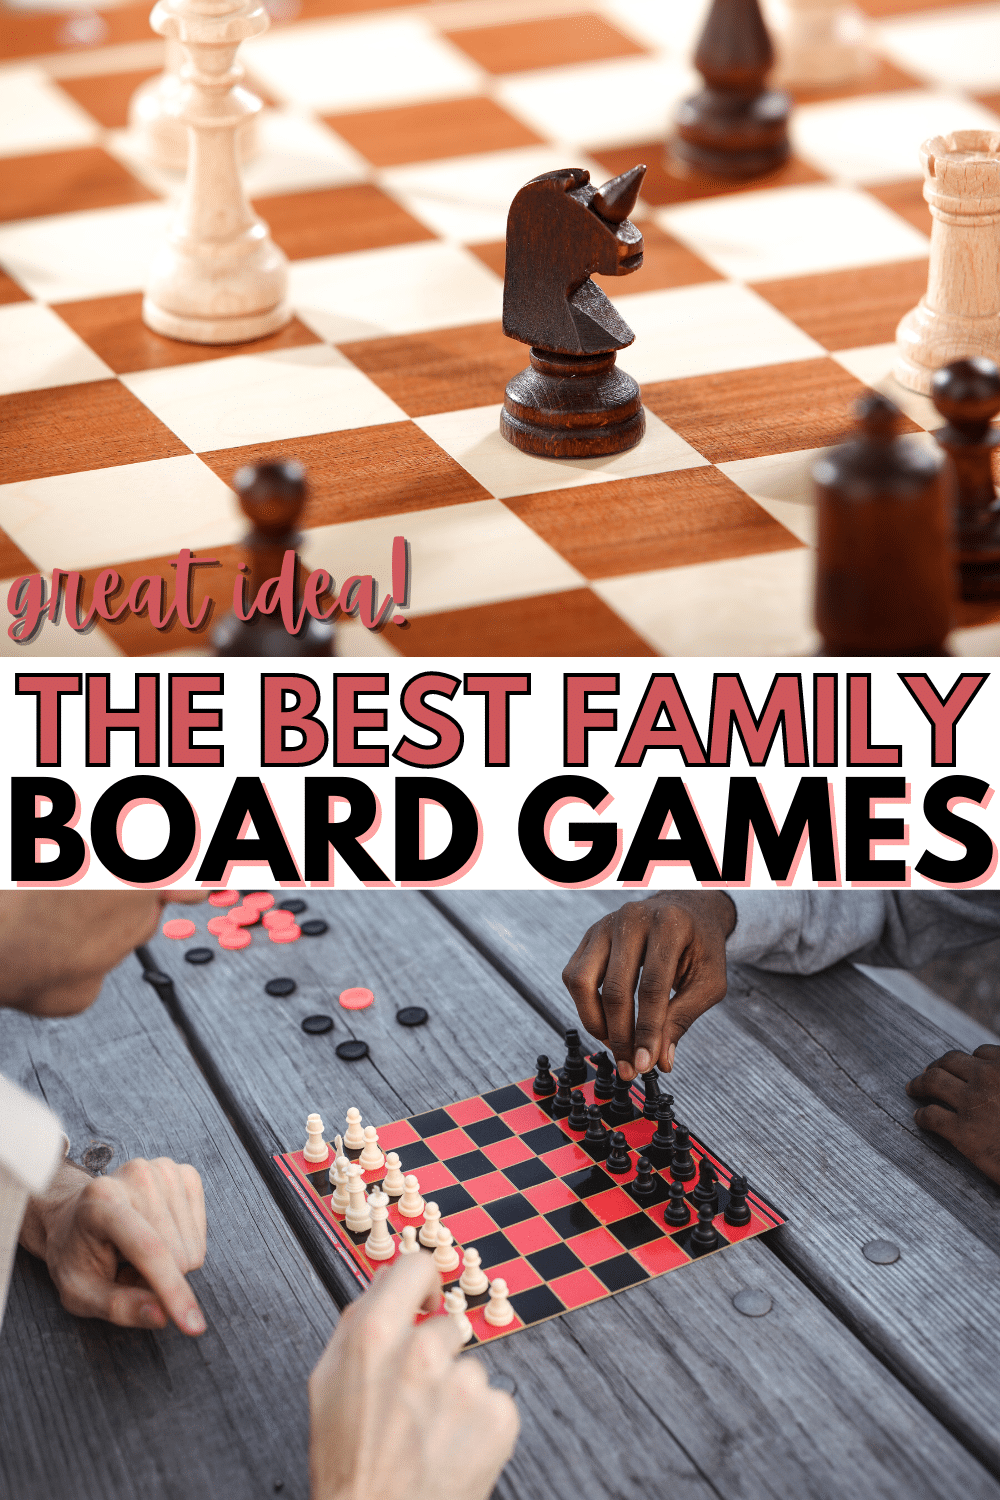 These are the best family board games for families with kids of all ages - tried, tested, and recommended by my family of six. #boardgames #familyfun #familygames #familytime via @wondermomwannab